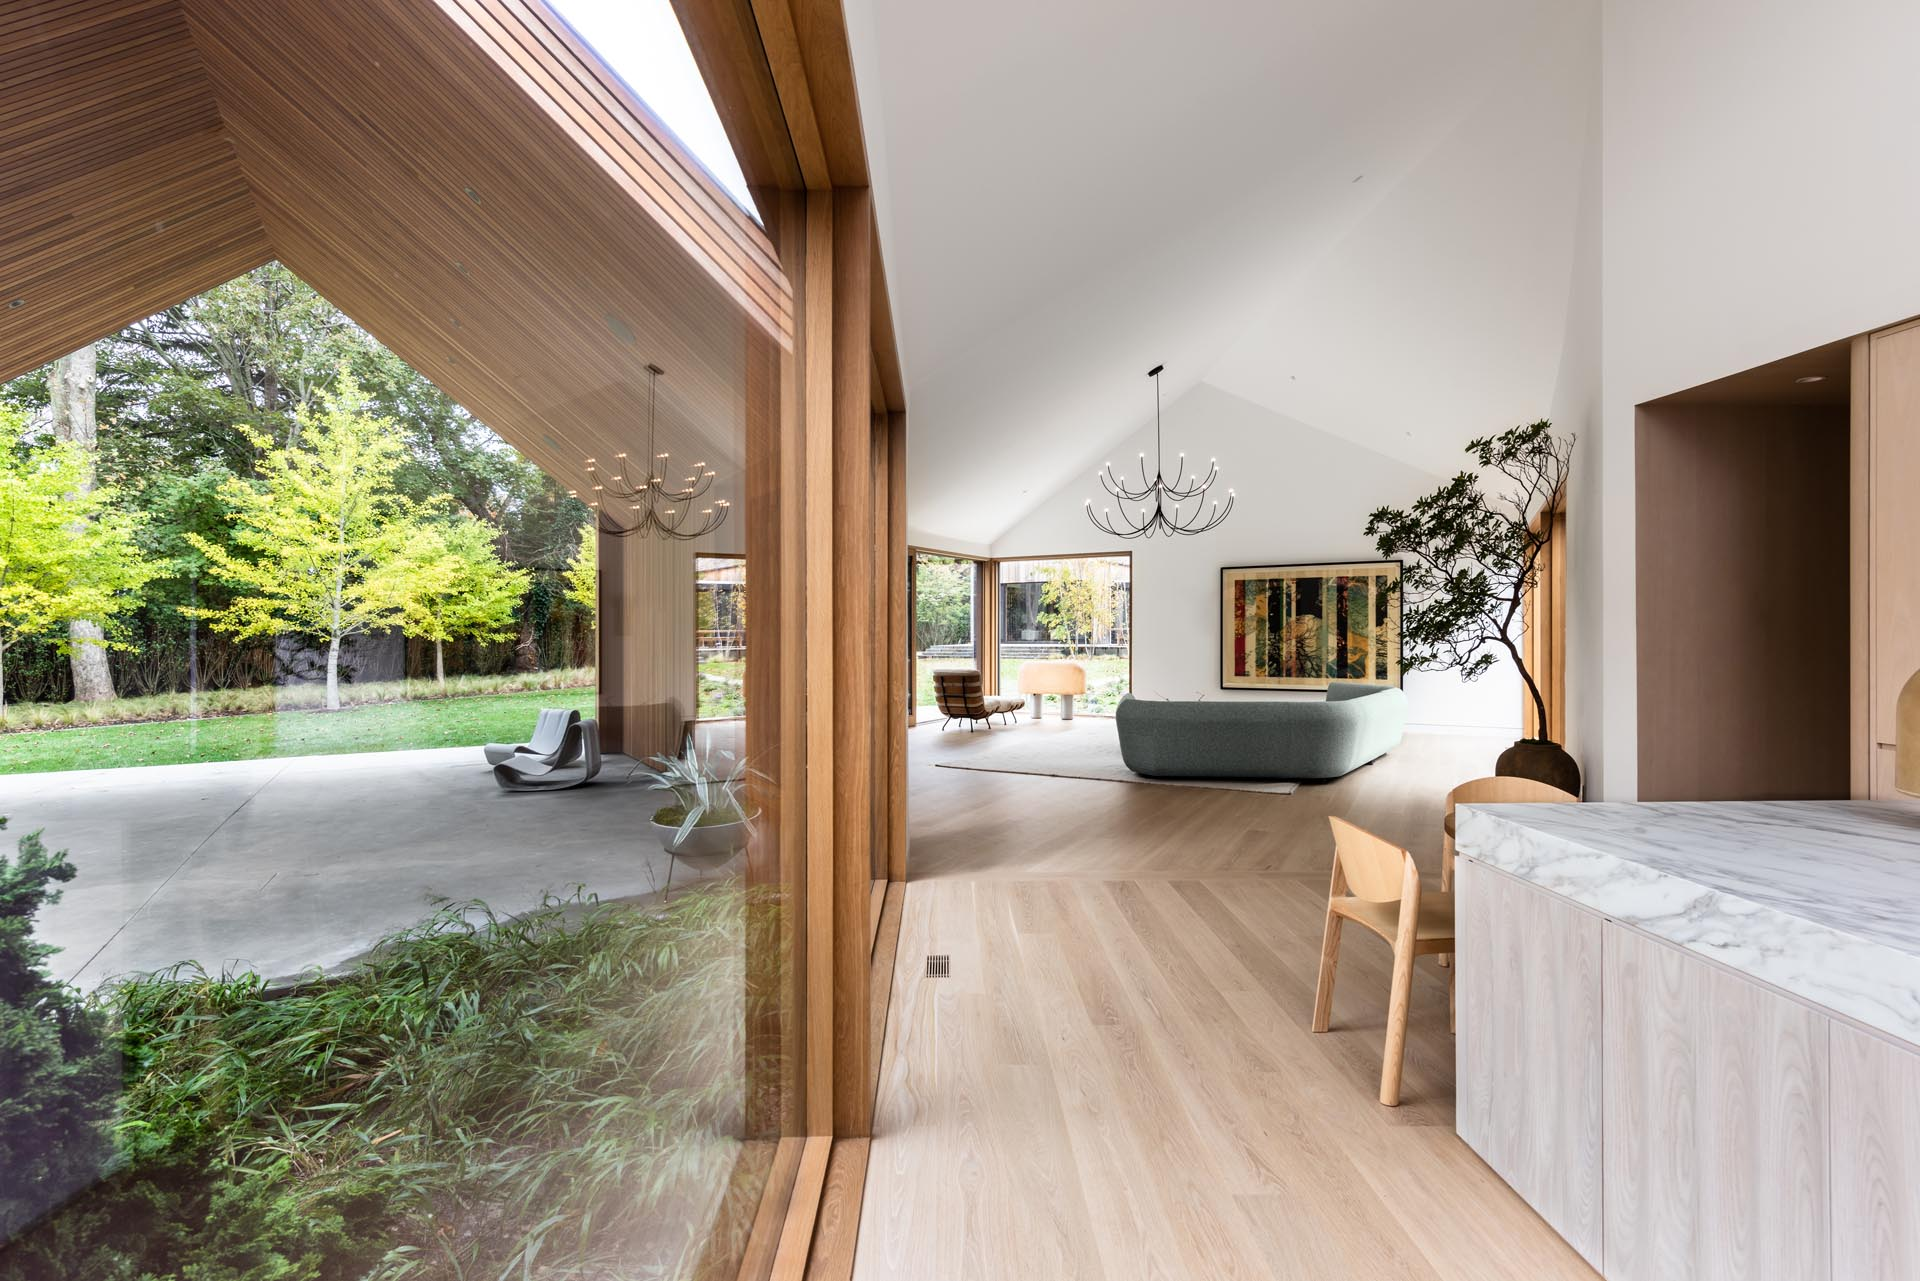 White oak wood floors add a sense of warmth to this modern home interior.